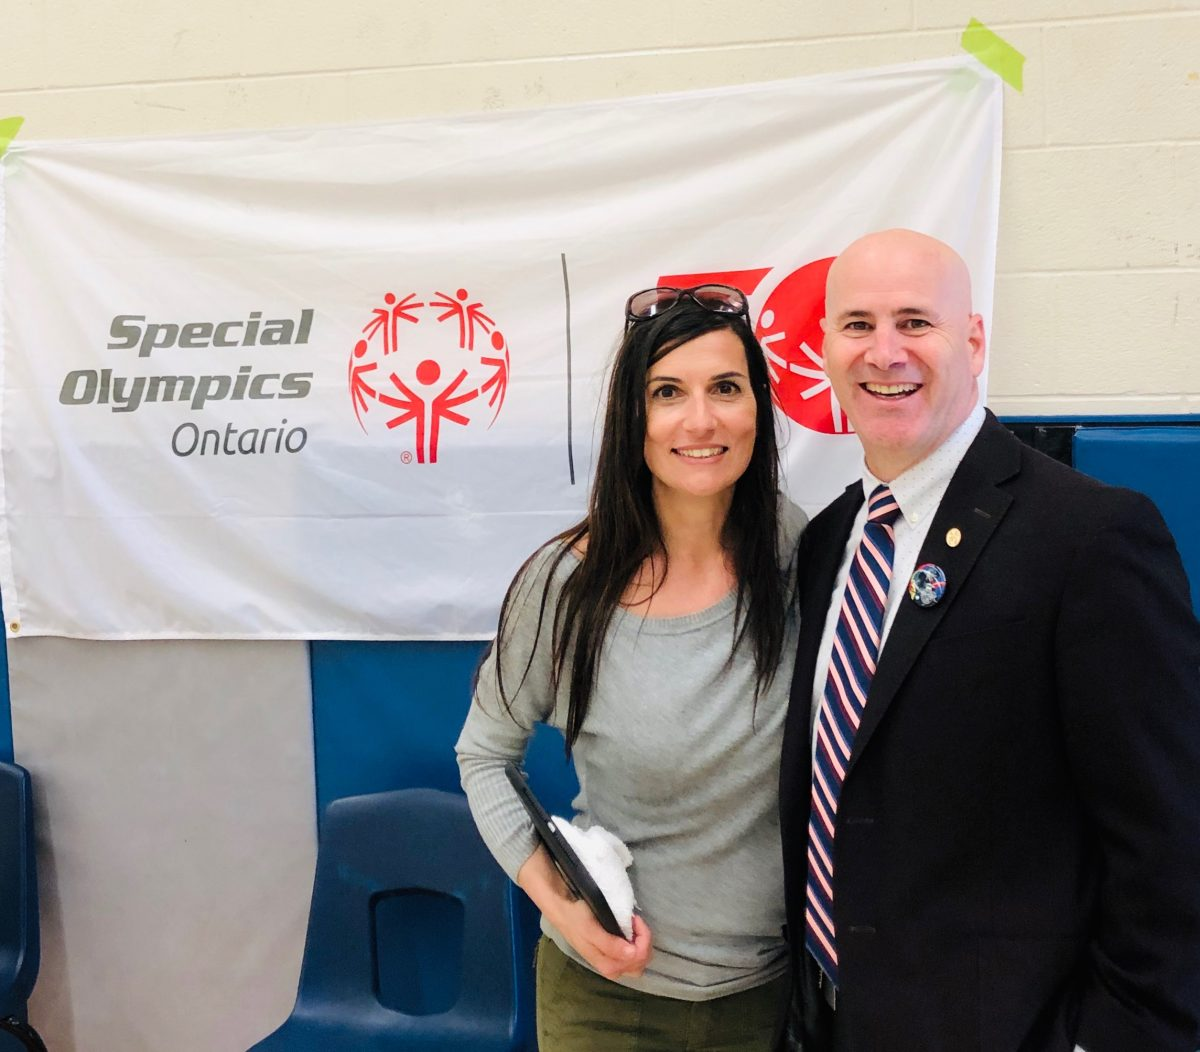 St. Catherine of Siena hosts first Elementary Special Olympics Sports Festival